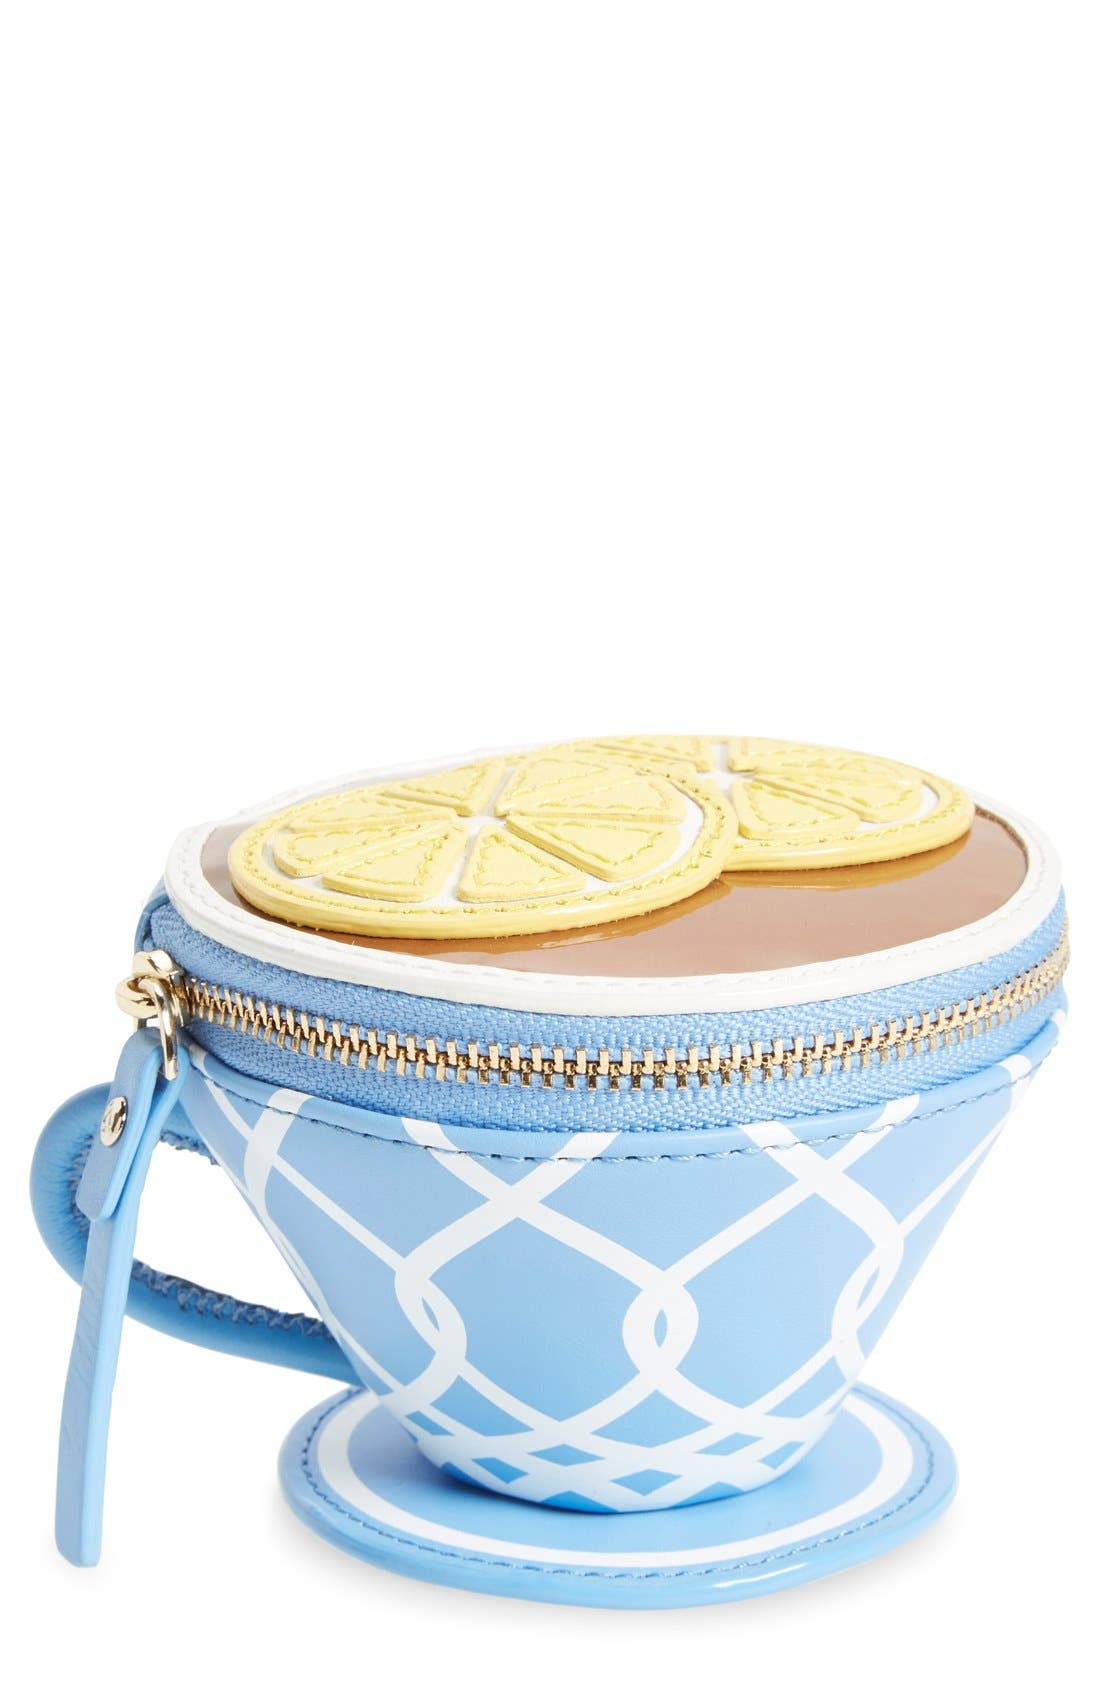 Main Image - kate spade new york 'tea cup' leather coin purse